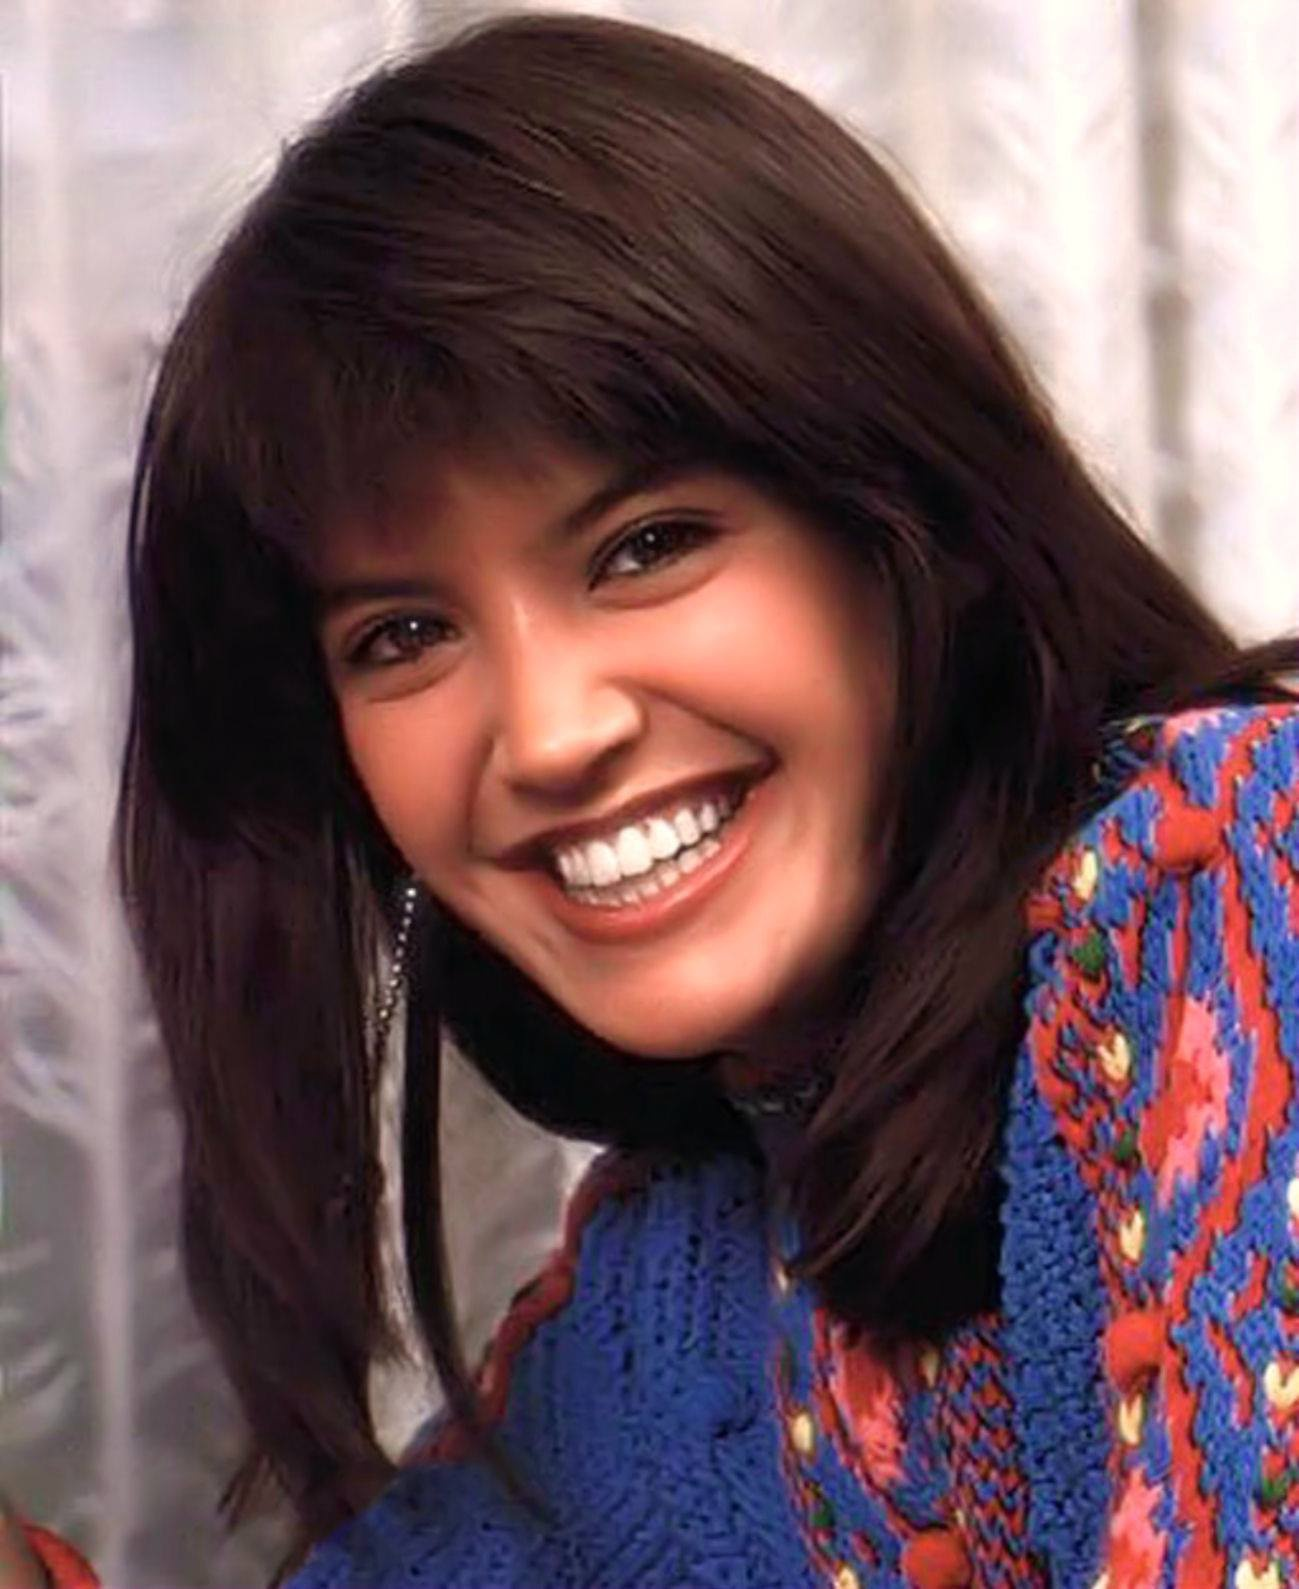 PHOEBE CATES THE ONE AND ONLY